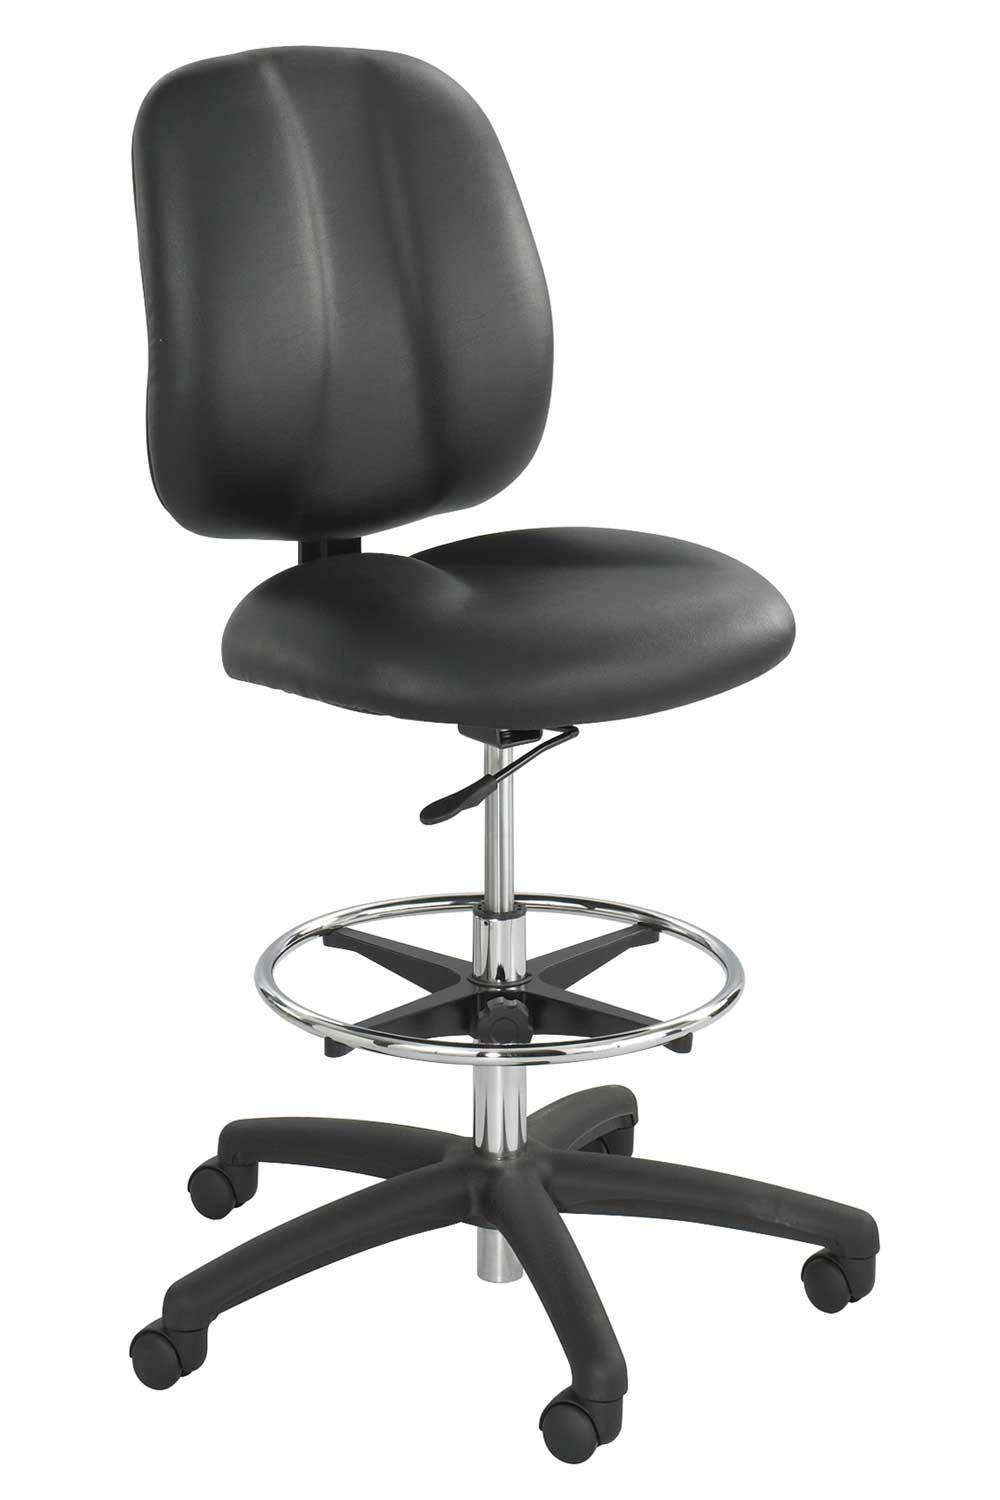 Tall Desk Chairs With Backs